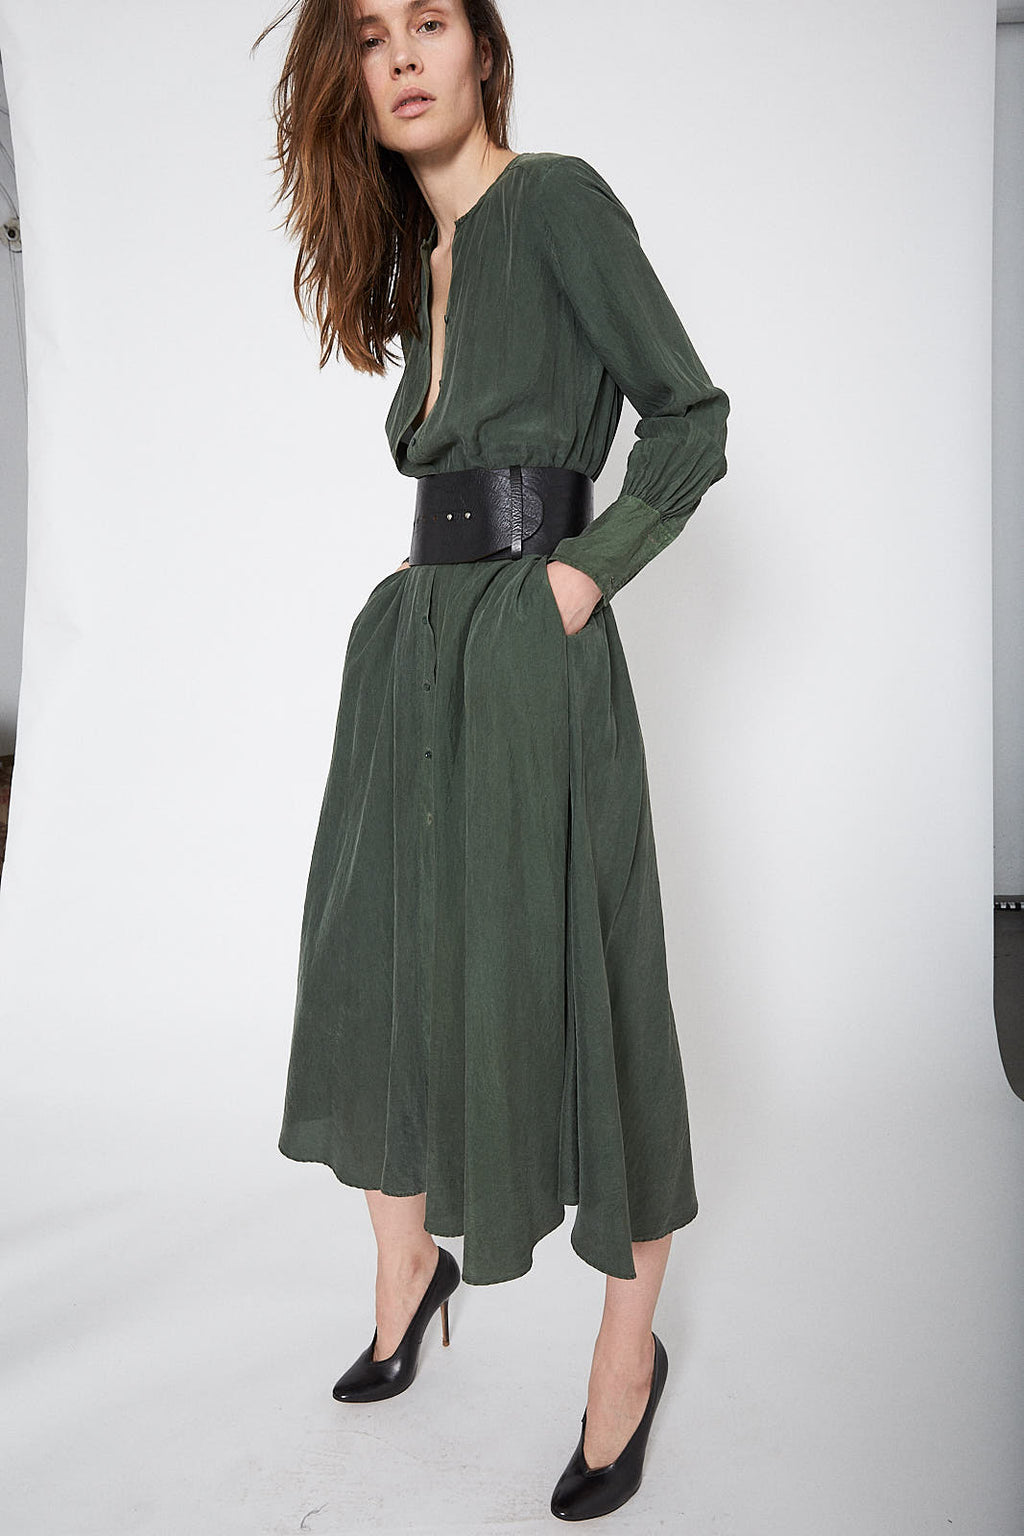 KES Cuffed Shirt Dress